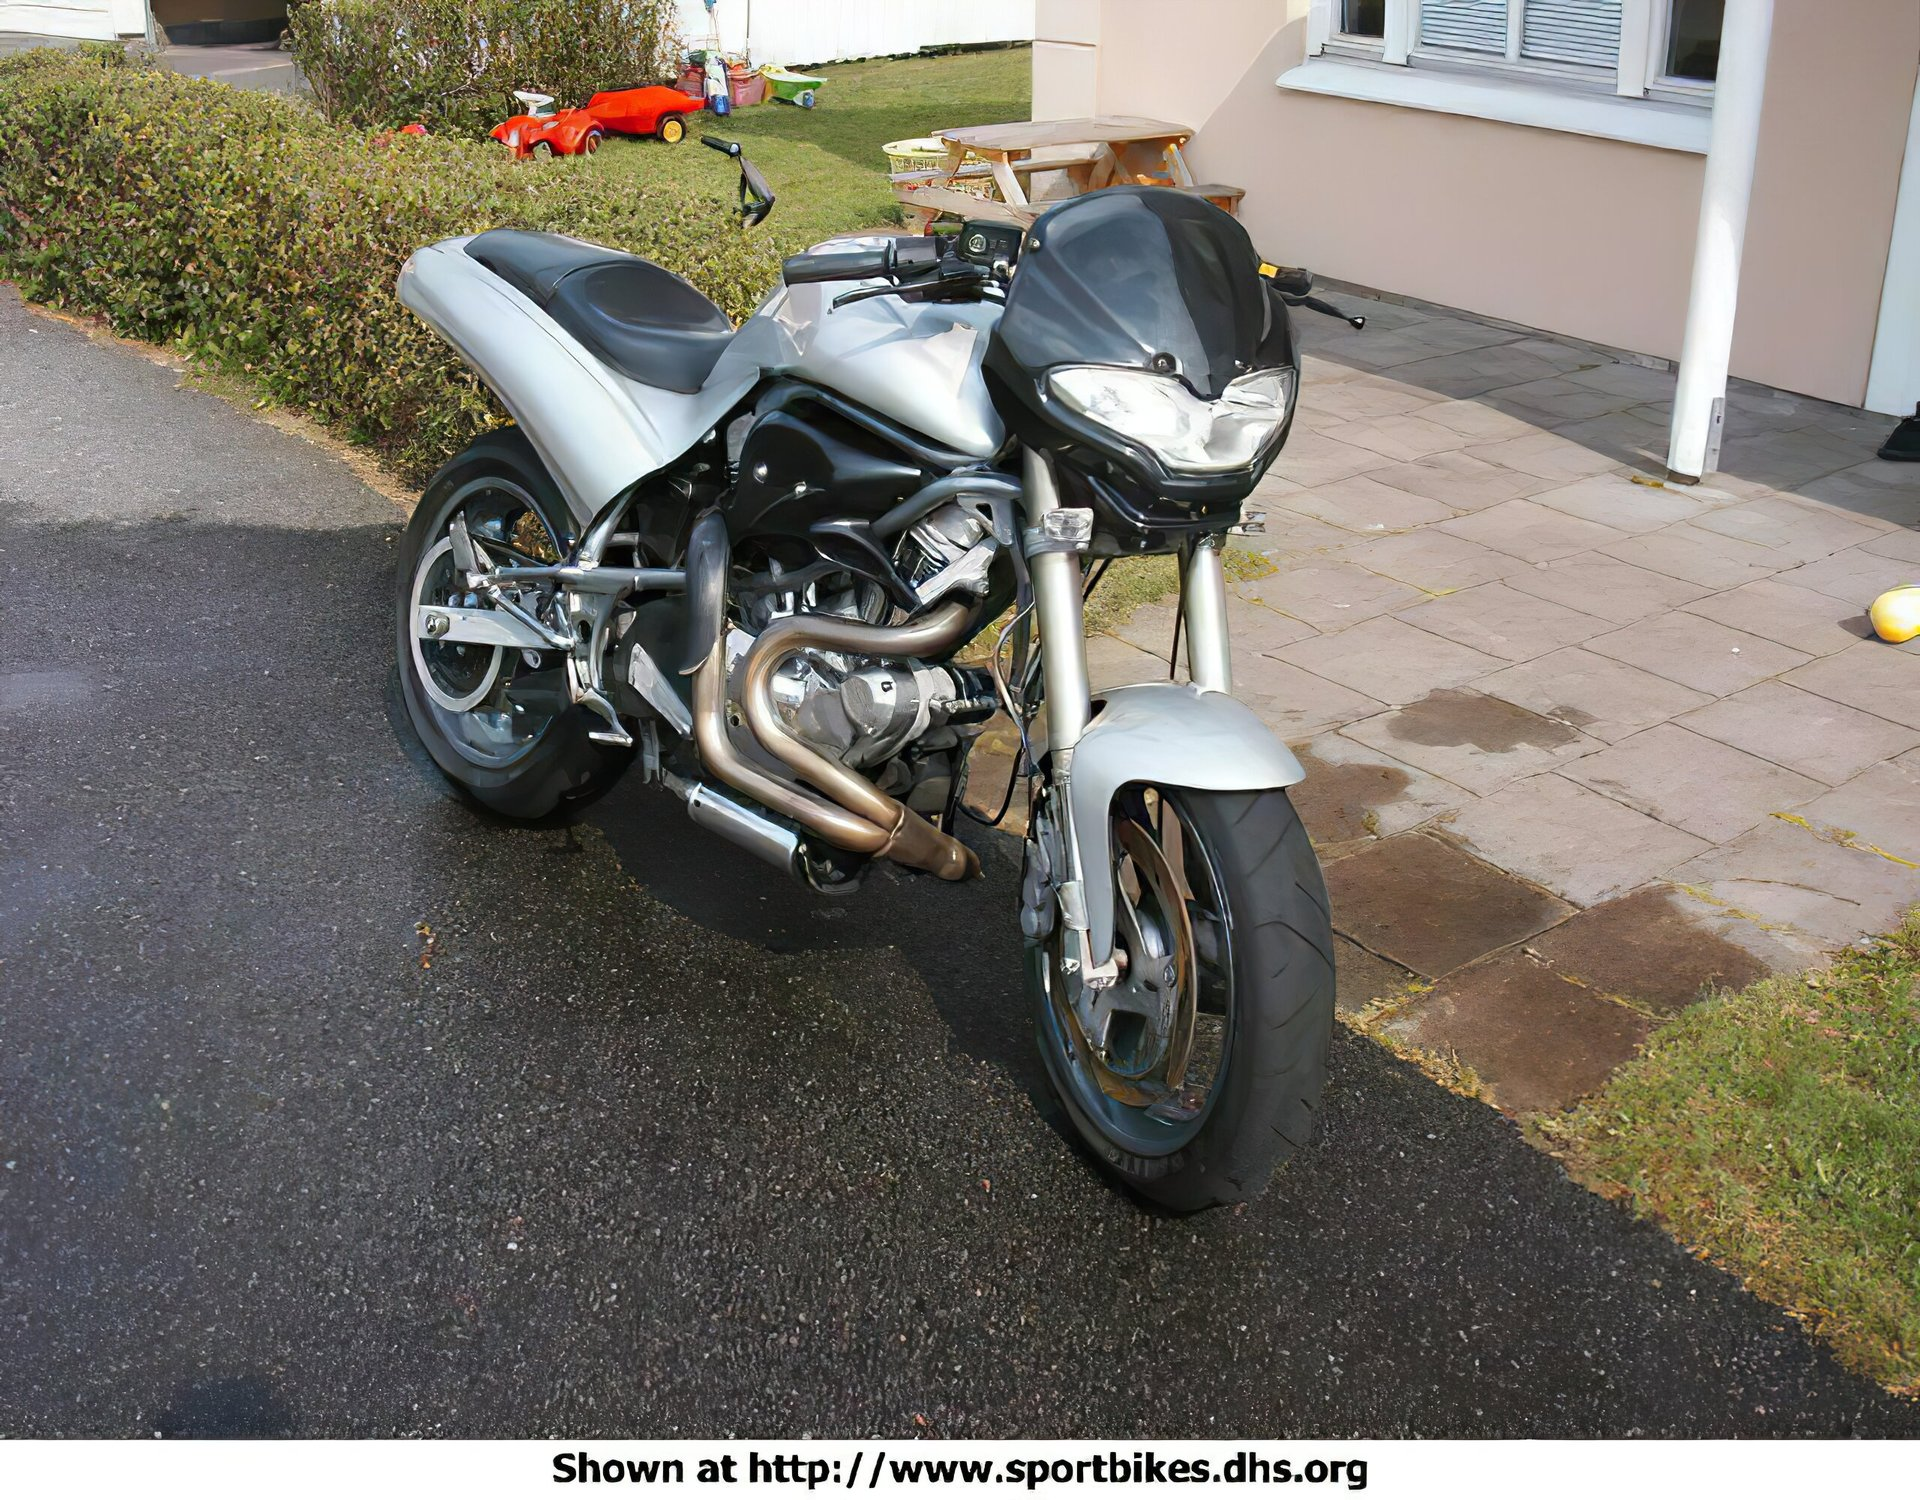 Buell S1/S2/S3 - ID: 34344